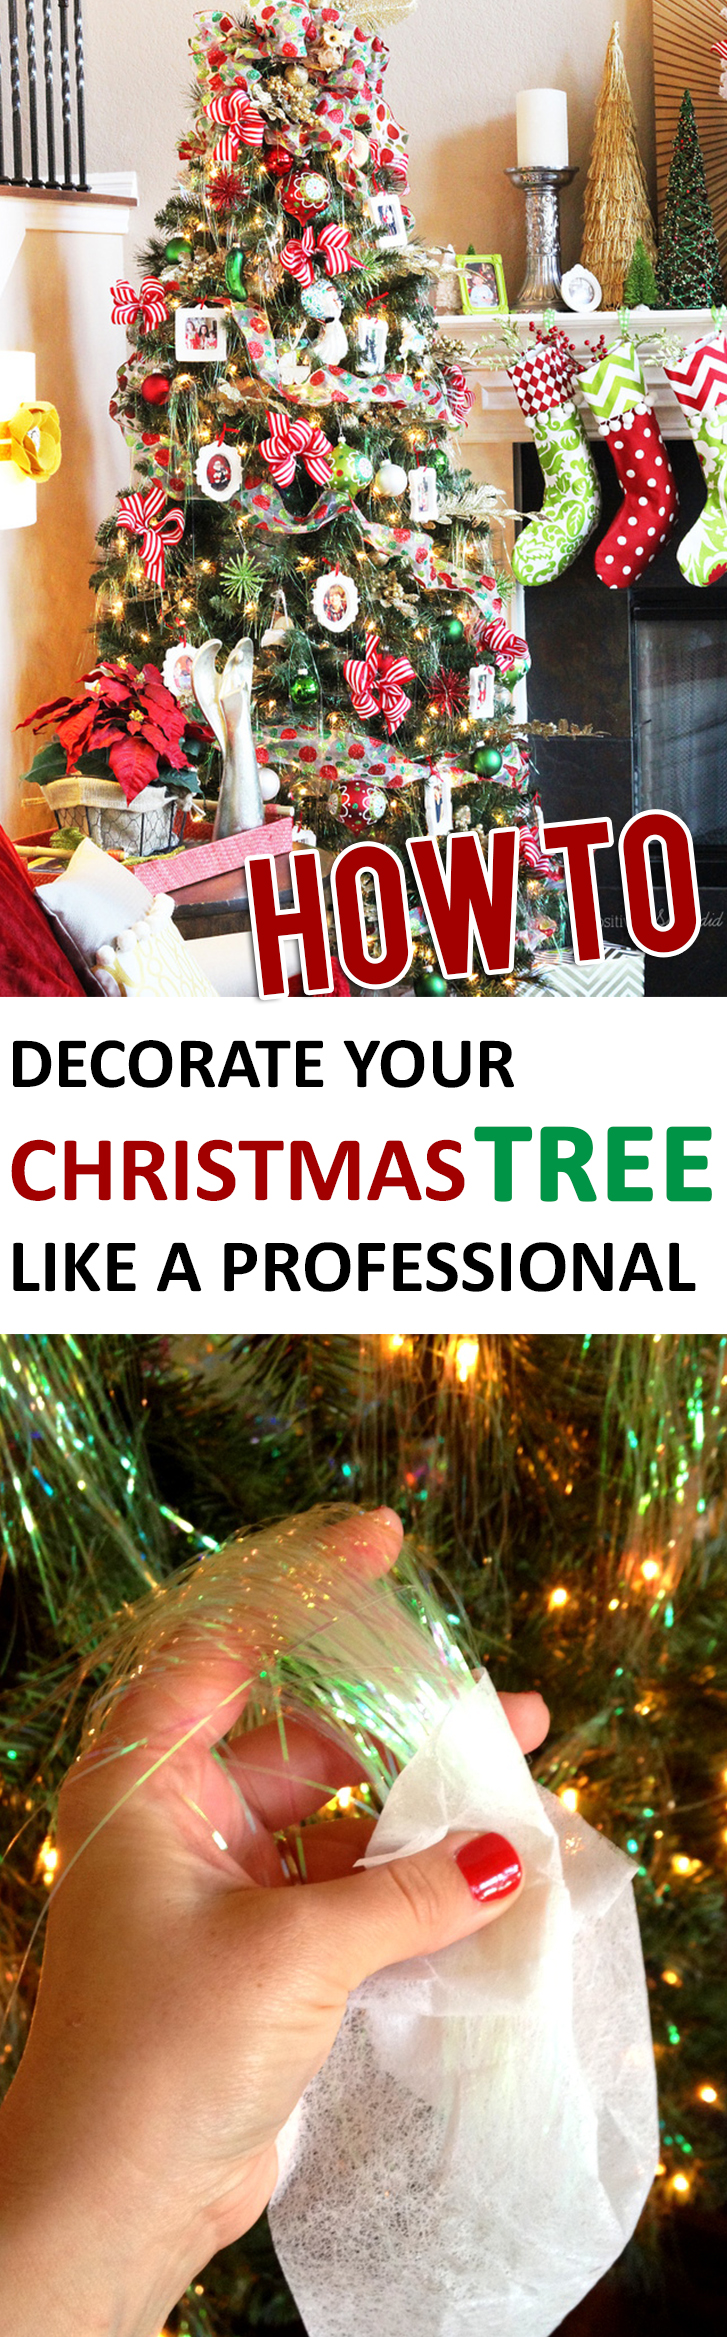 how to decorate your christmas tree like a professional - How To Decorate A Christmas Tree Like A Professional